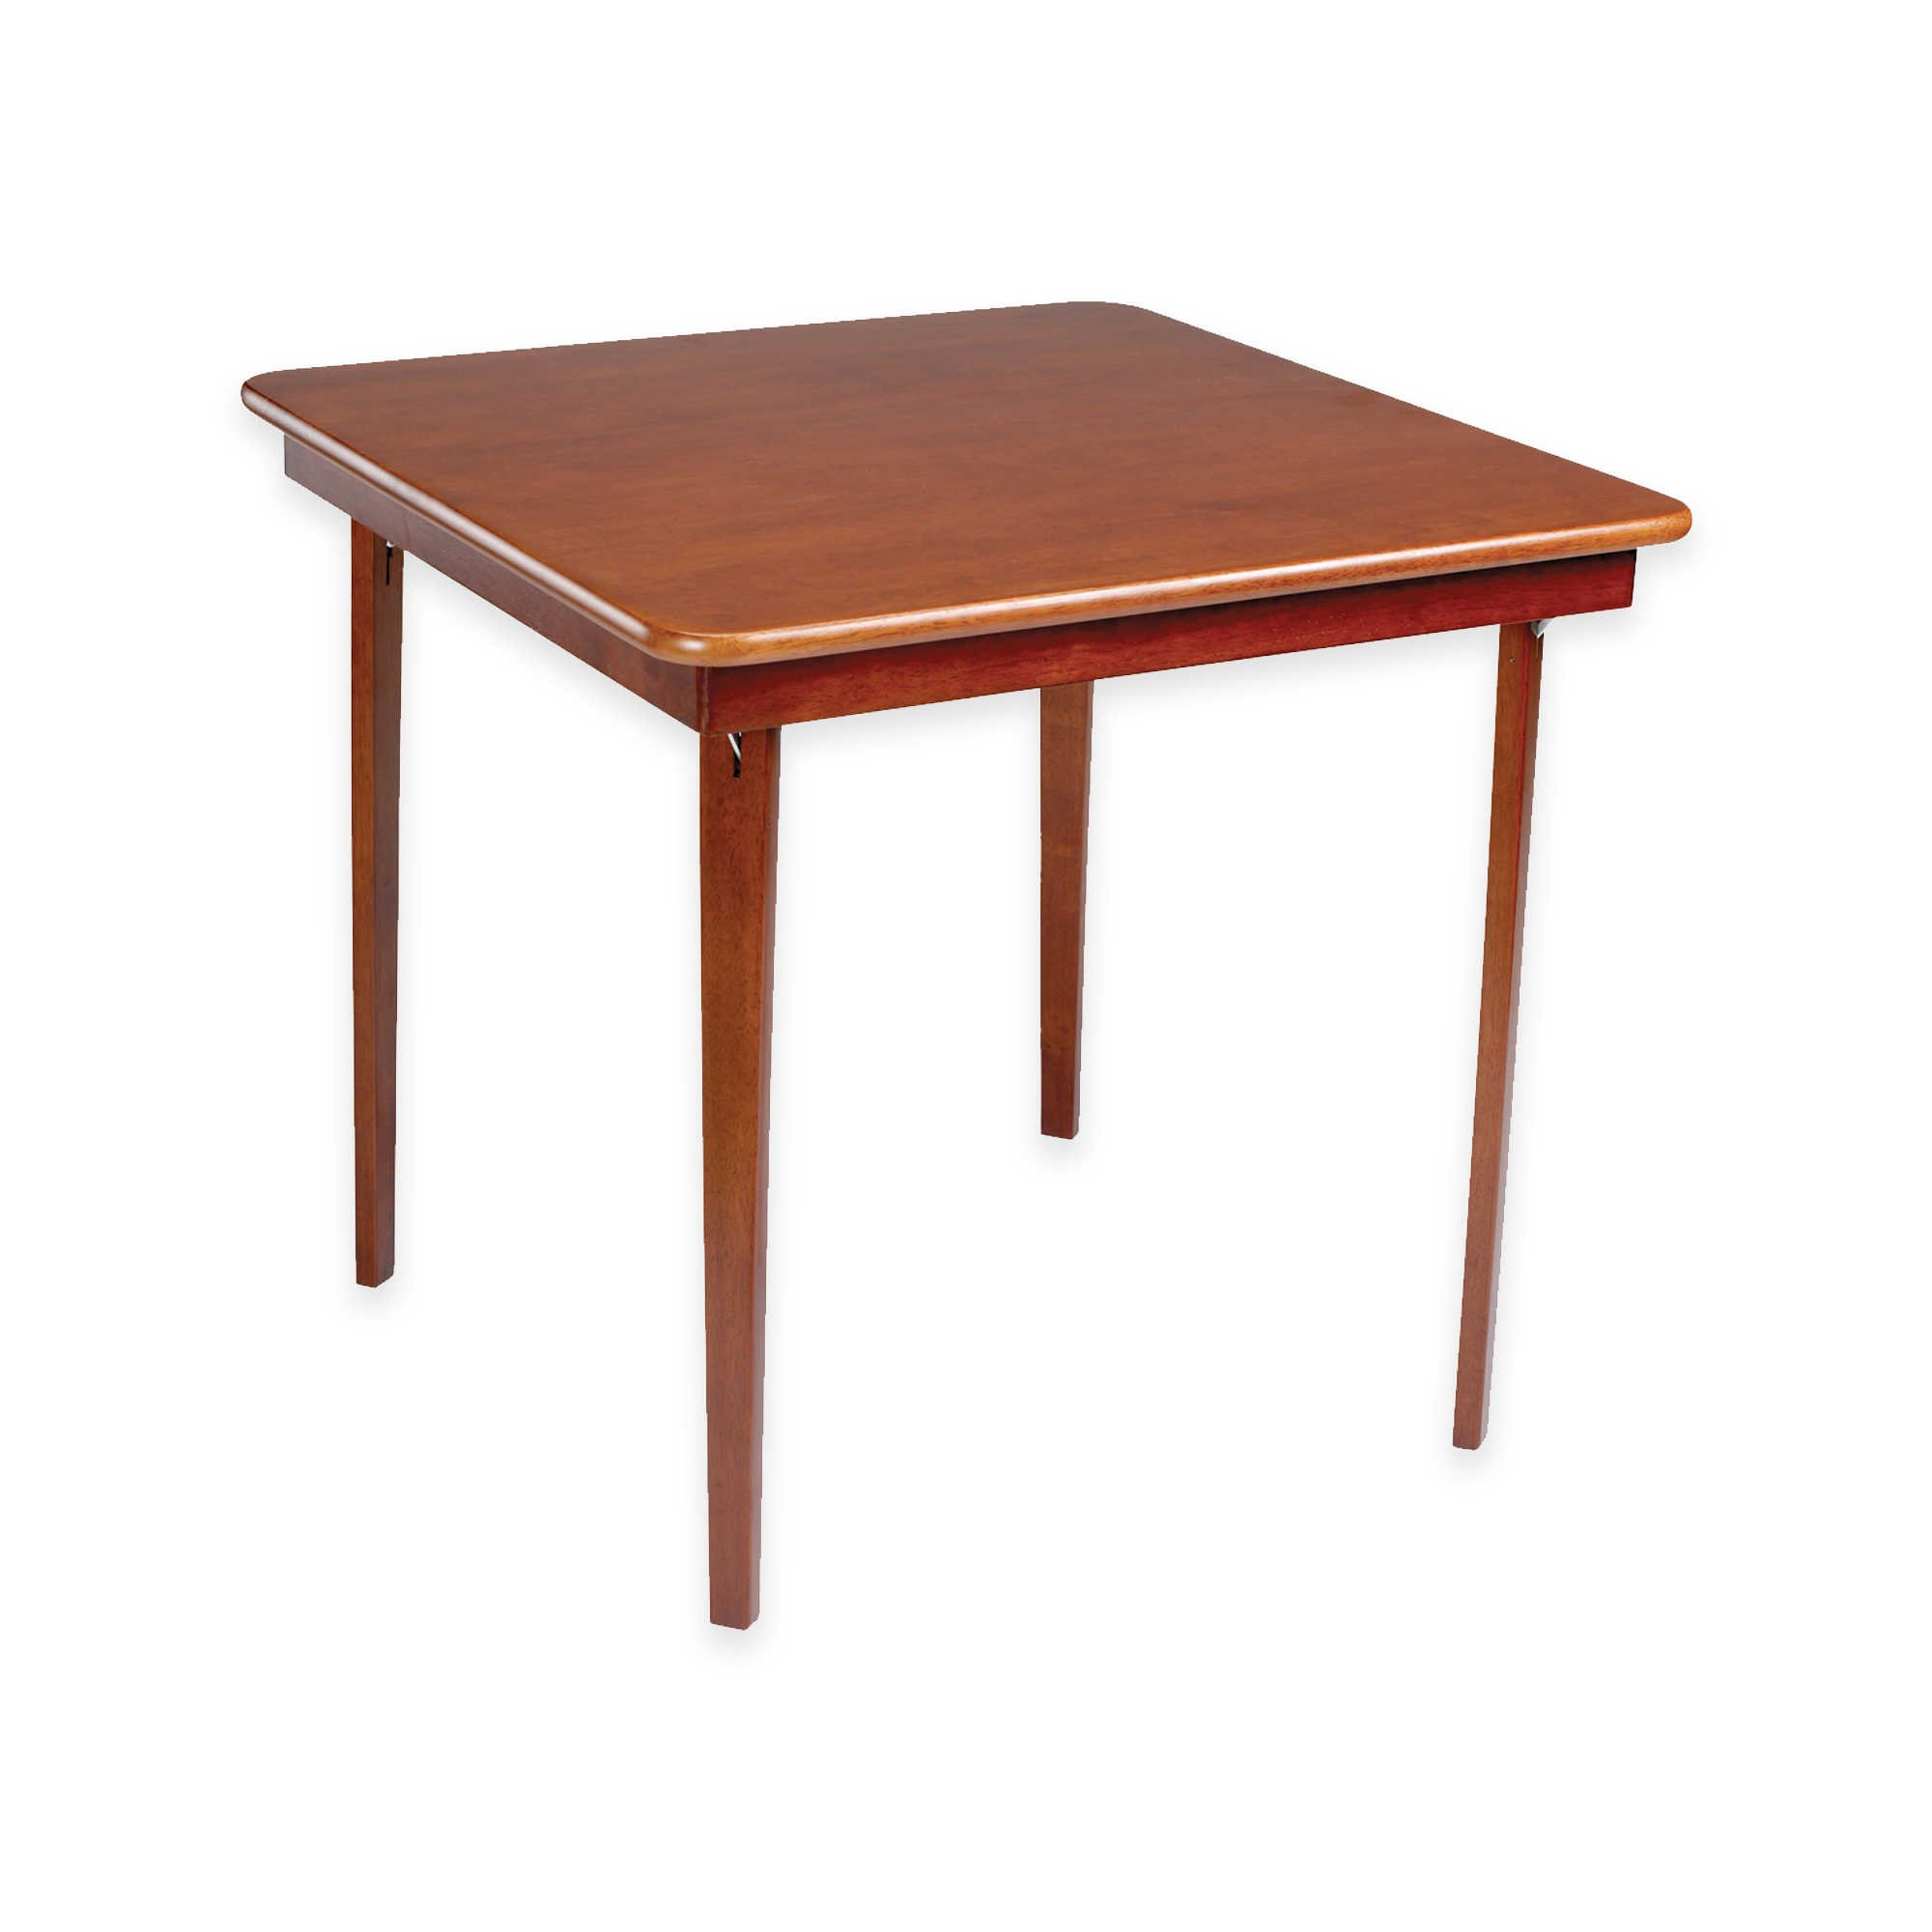 Straight Edge Hardwood Folding Card Table with Easy Steel Folding Mechanism in Warm Cherry Finish